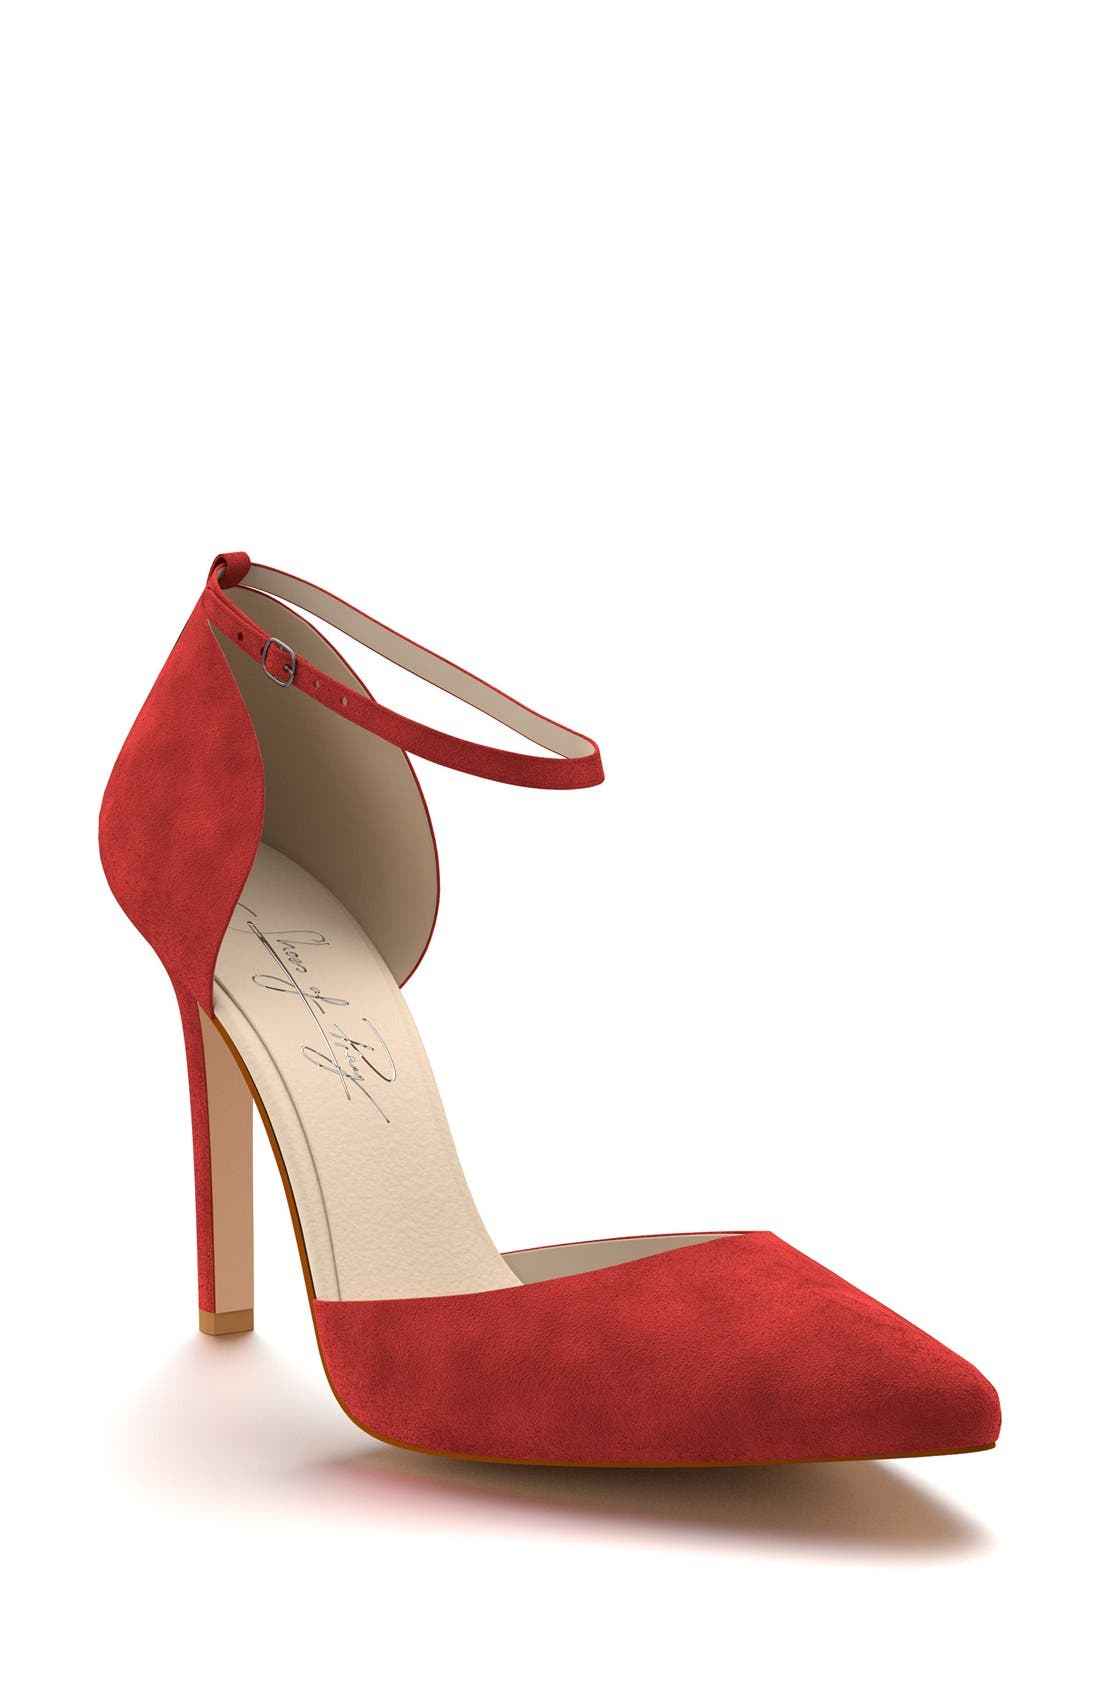 Main Image - Shoes of Prey d'Orsay Ankle Strap Pump (Women)